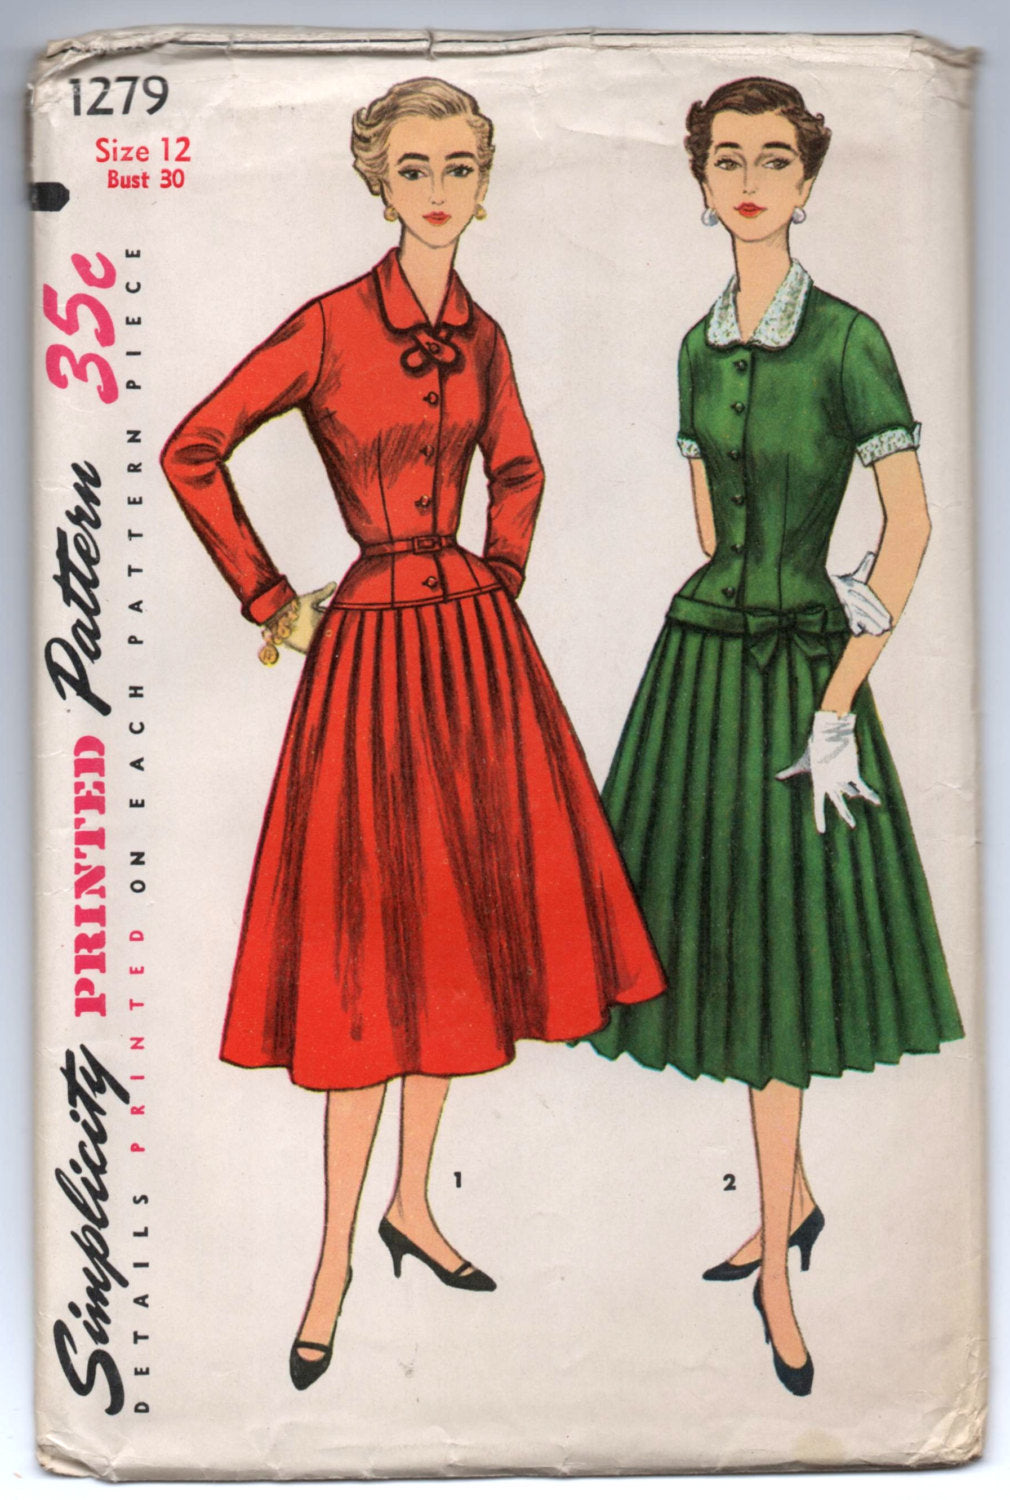 1950's Simplicity One-Piece Dress with Collar, Drop Waist and Pleats - UC/FF - Bust 30